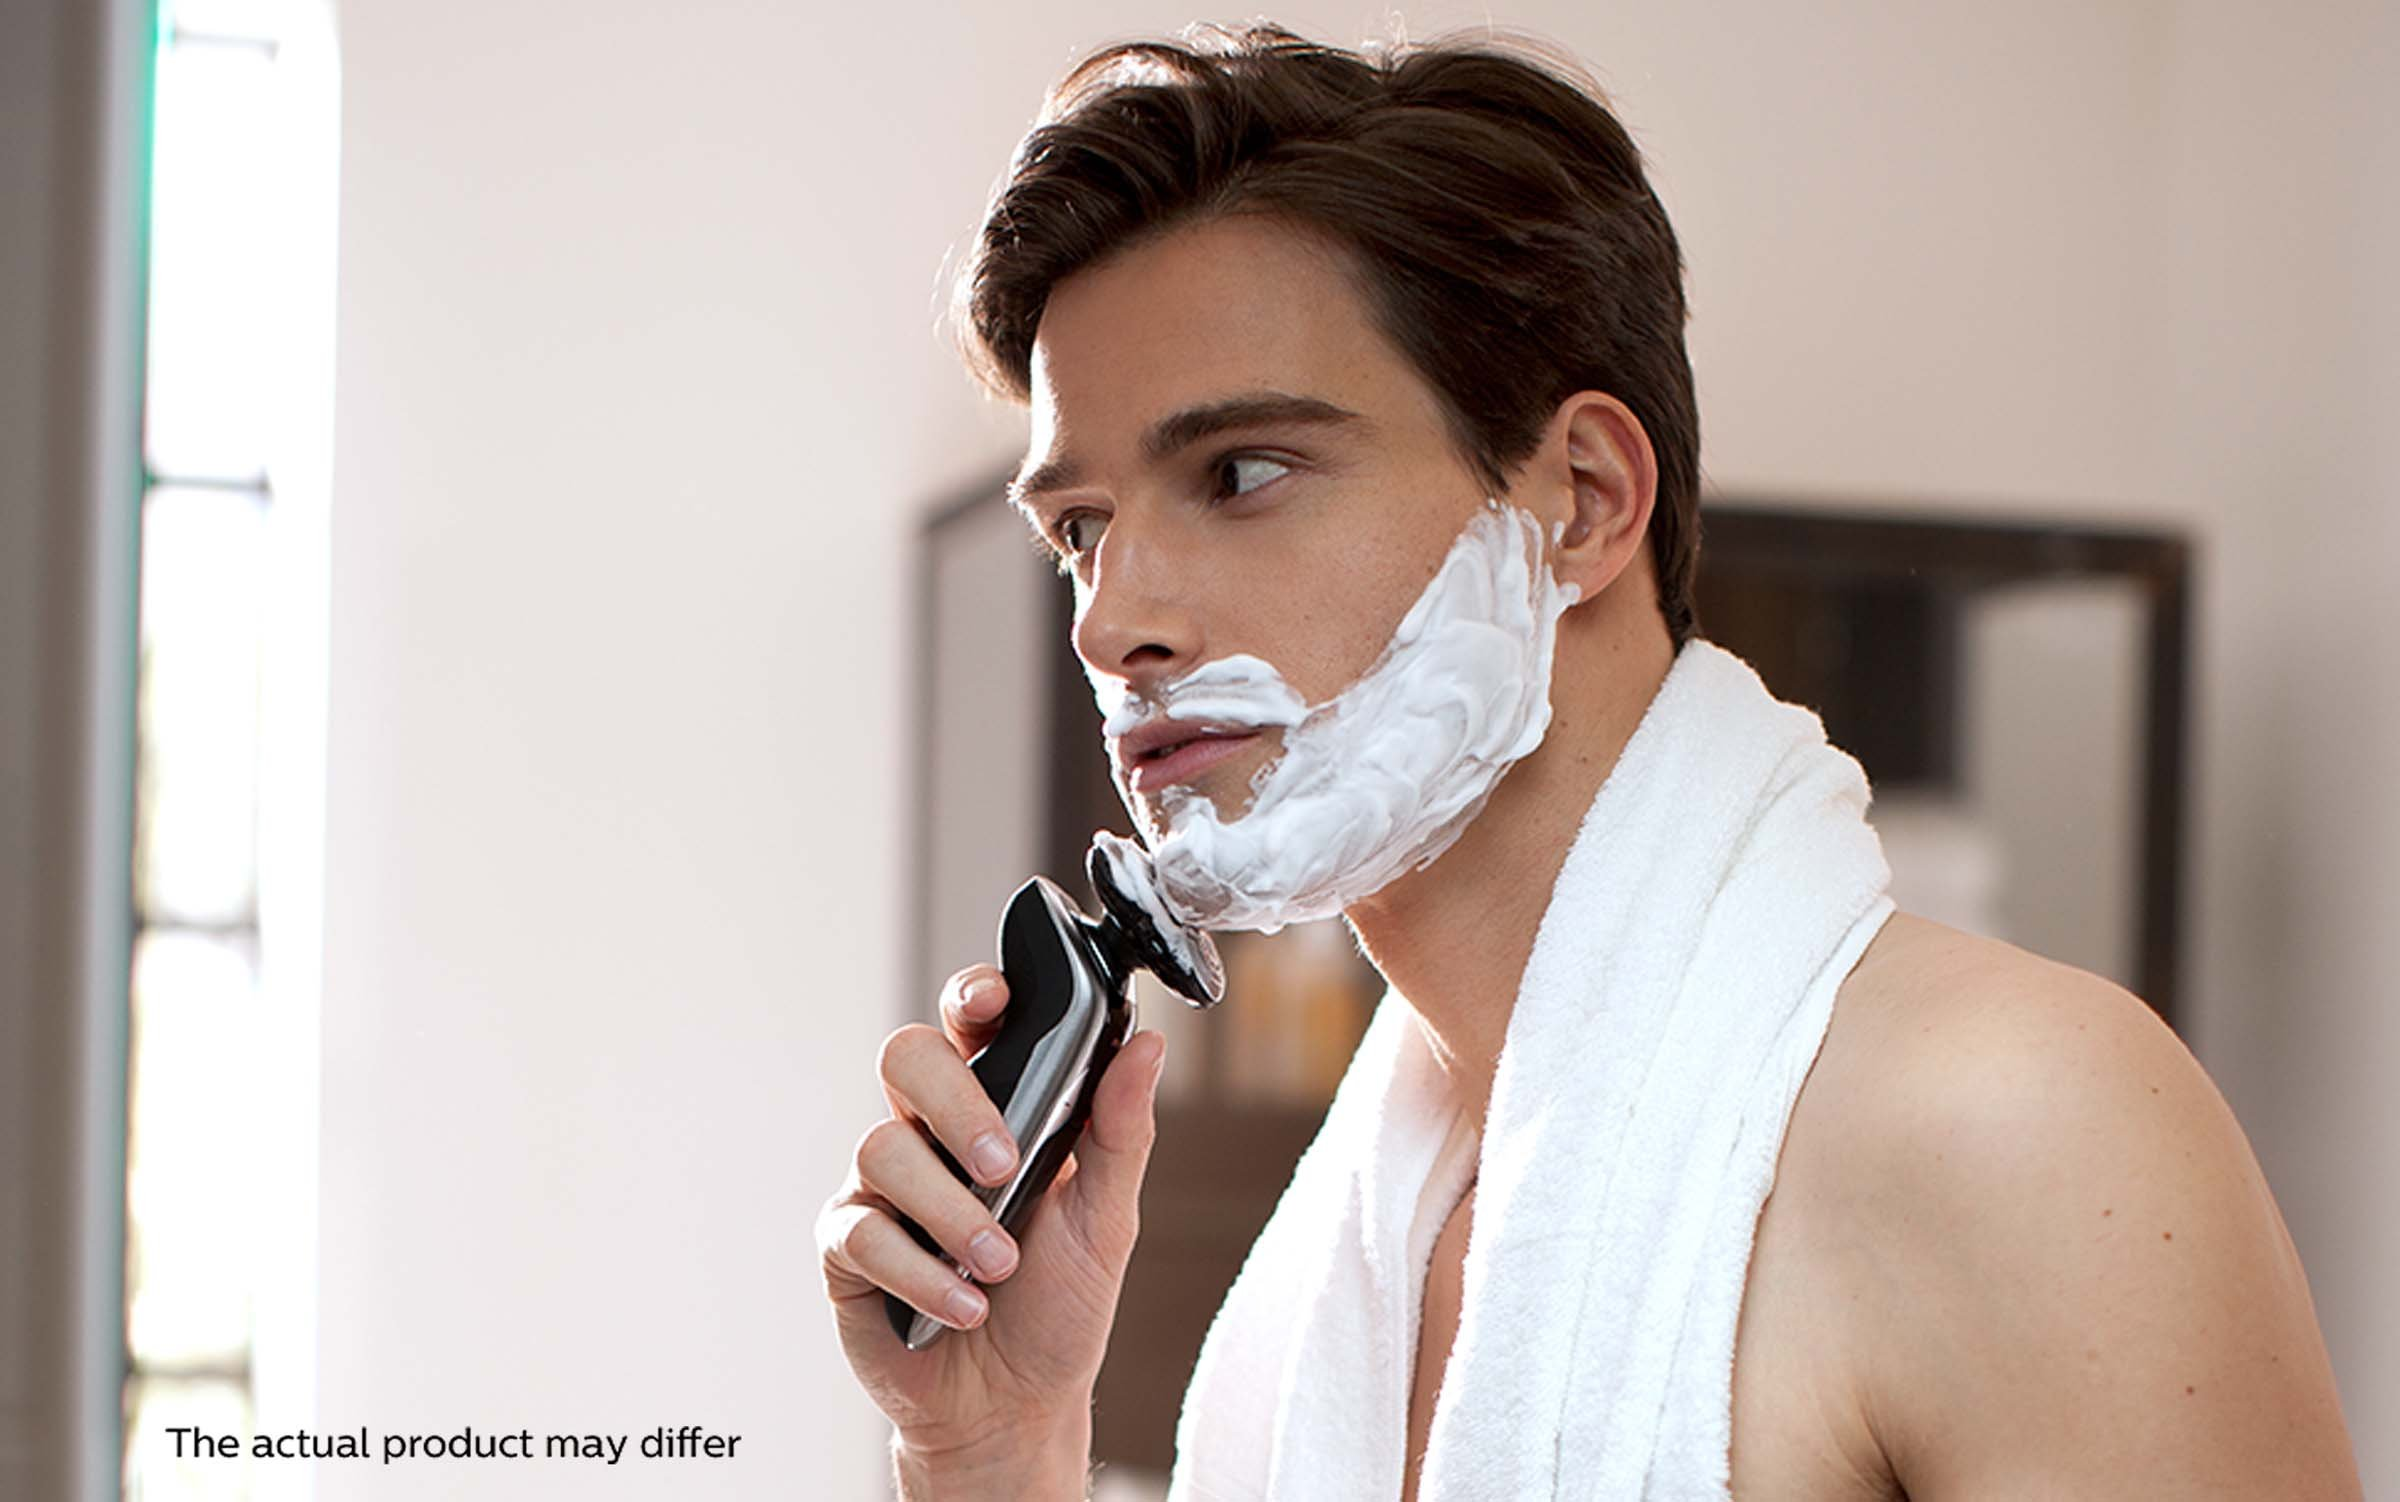 Philips Norelco Electric Shaver 9700, Cleansing Brush by Philips Norelco (Image #9)